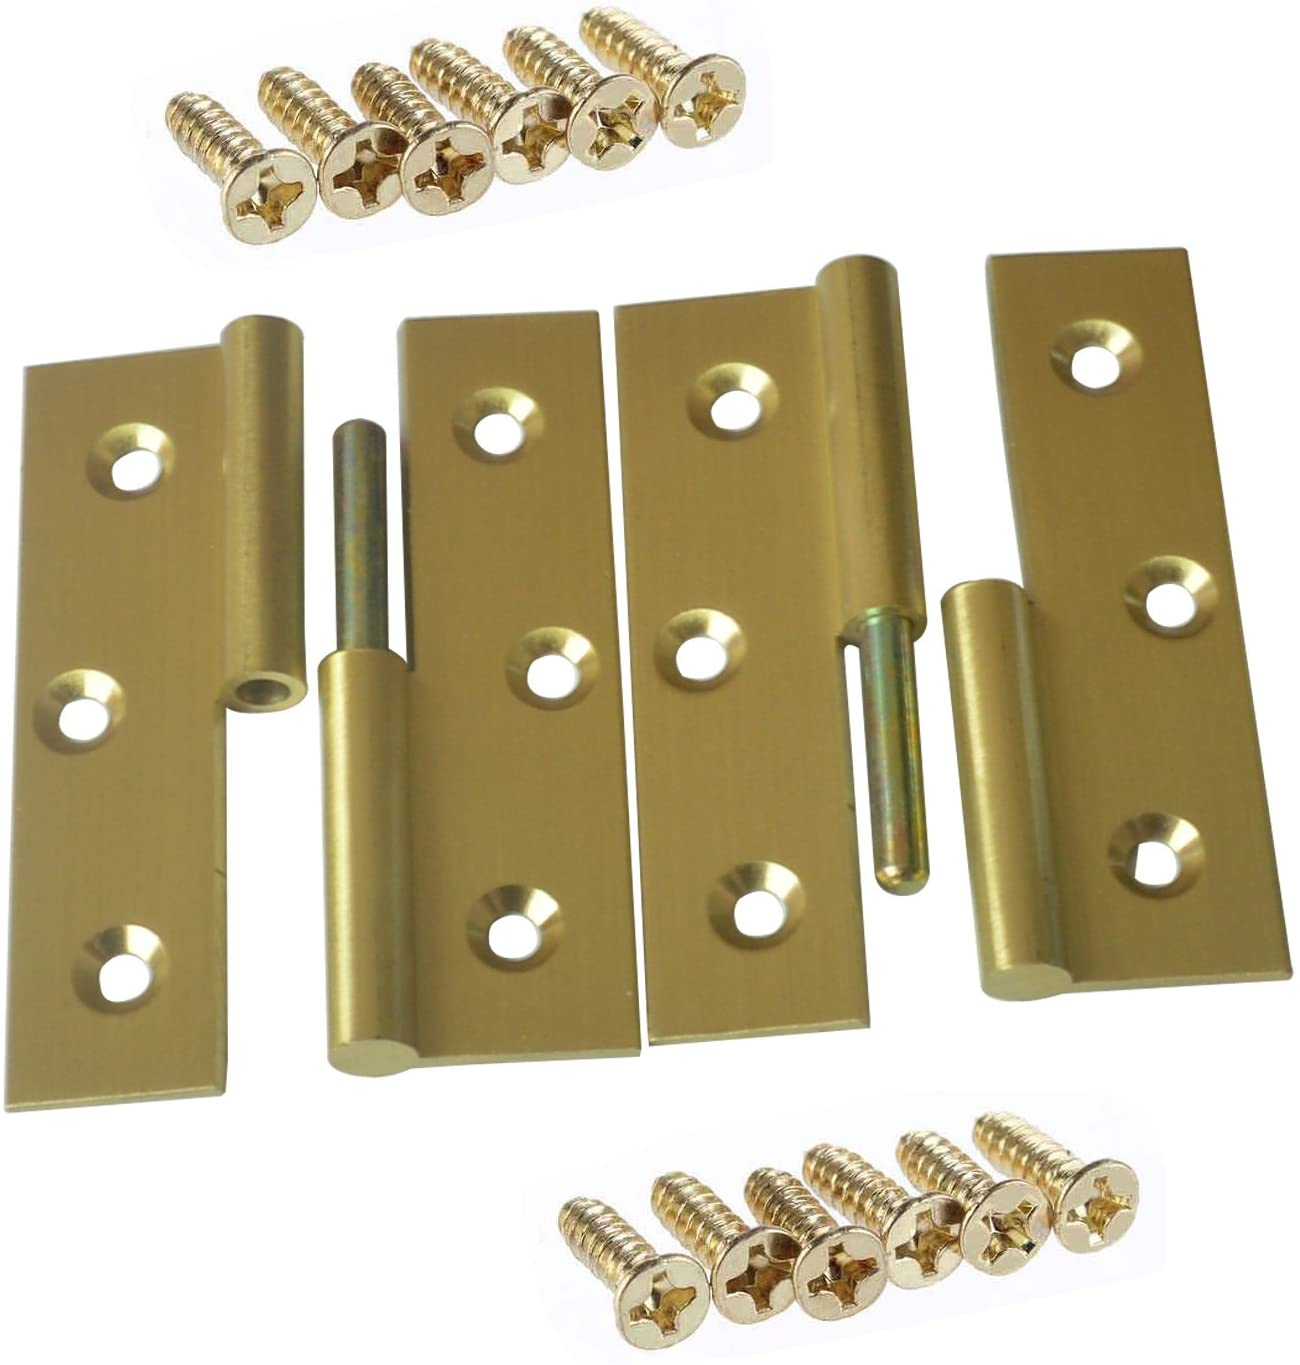 Pair of 2.5 inch Solid Brass Butler Tray Hinge with Screws Satin Finish for Folding Tables - Right Unloading